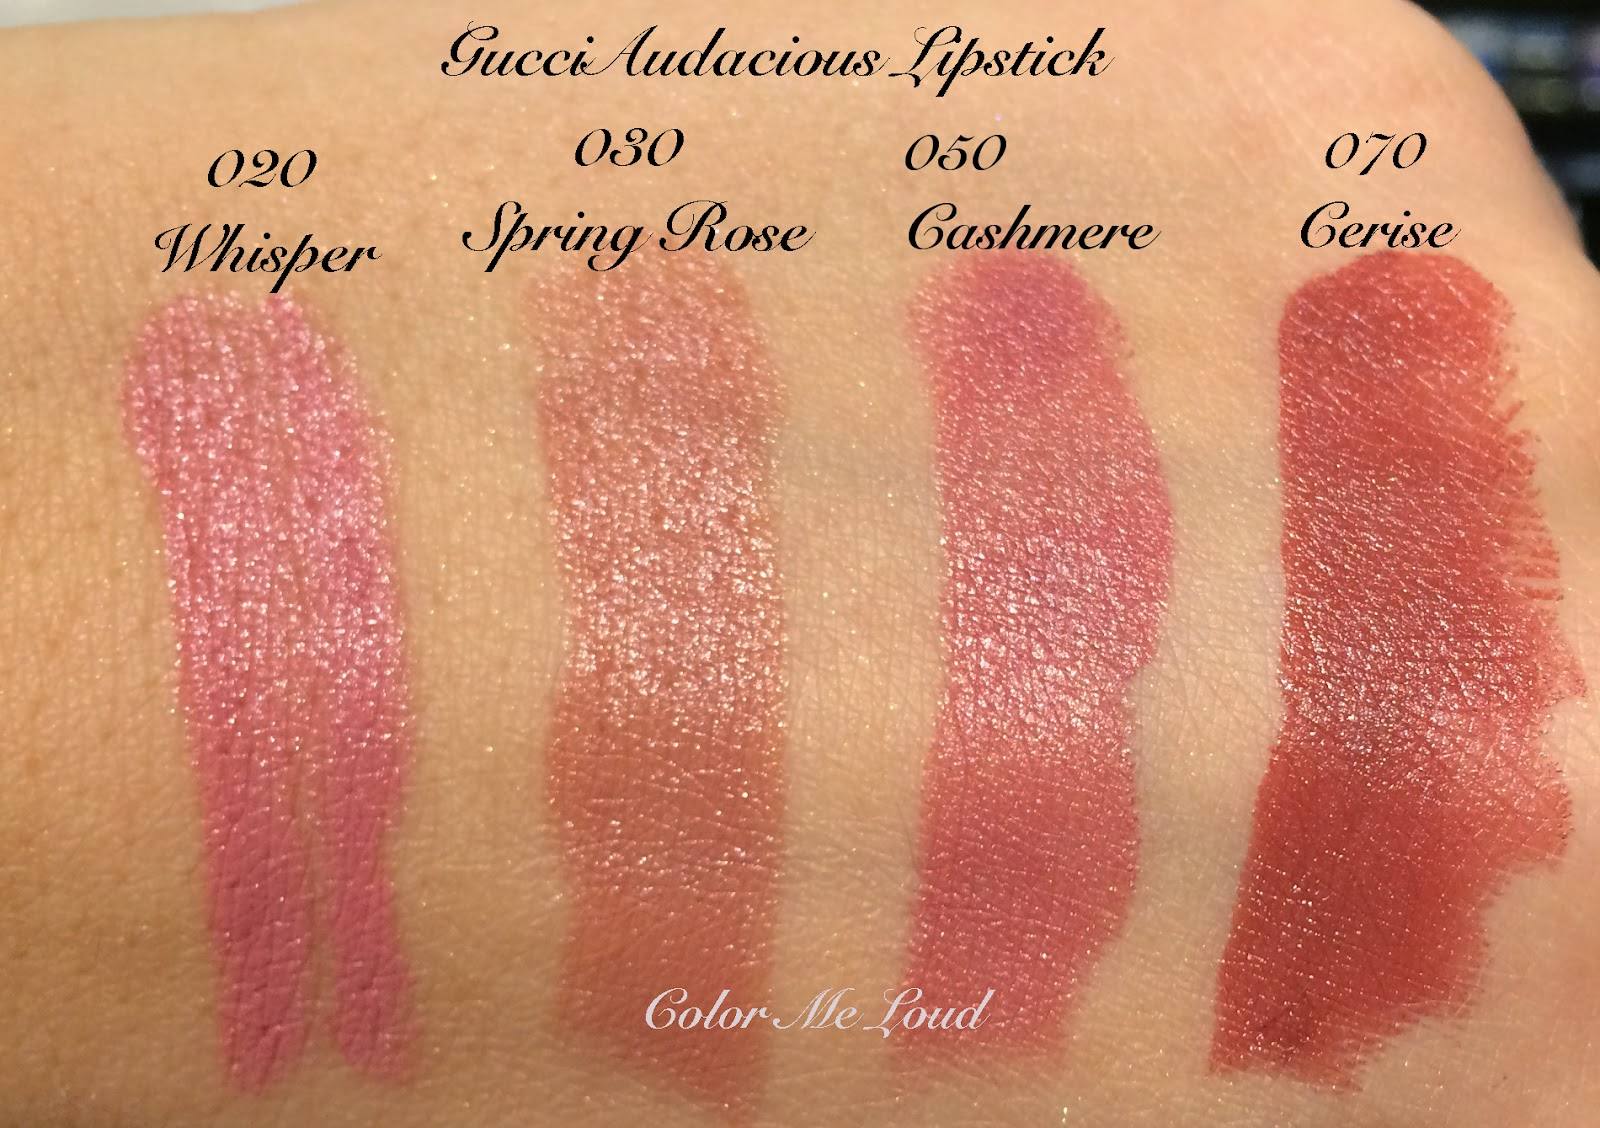 Gucci Audacious Lipstick Swatches, Whisper, Spring Rose, Cashmere and Cerise